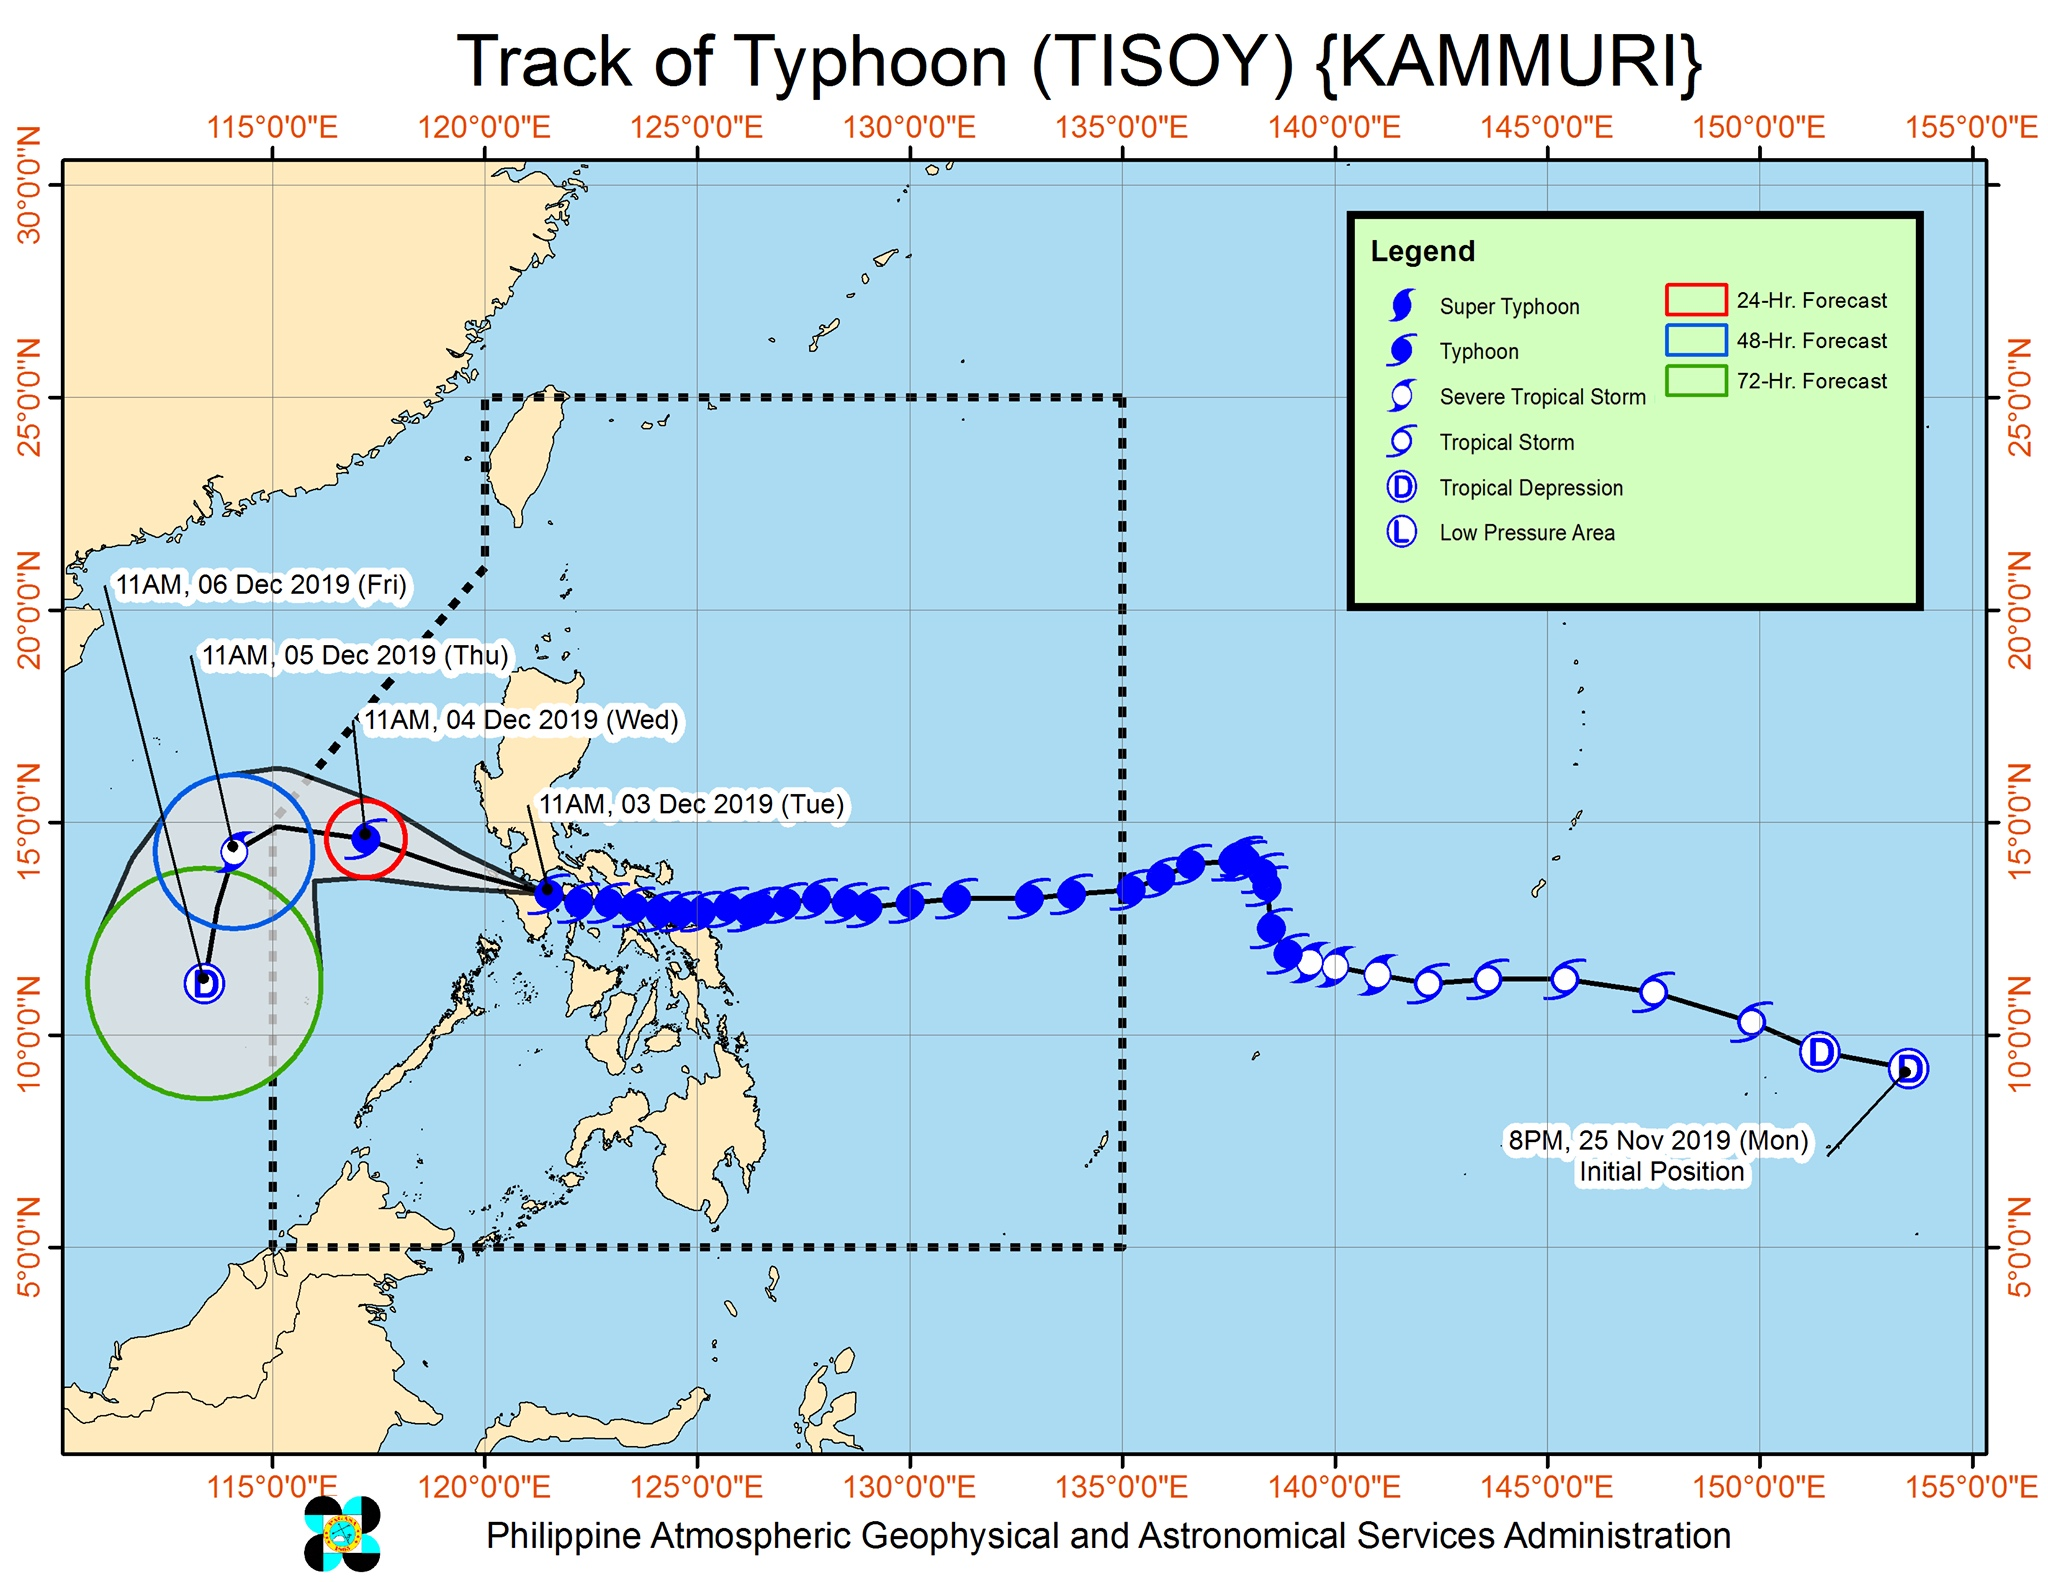 Forecast track of Typhoon Tisoy (Kammuri) as of December 3, 2019, 2 pm. Image from PAGASA